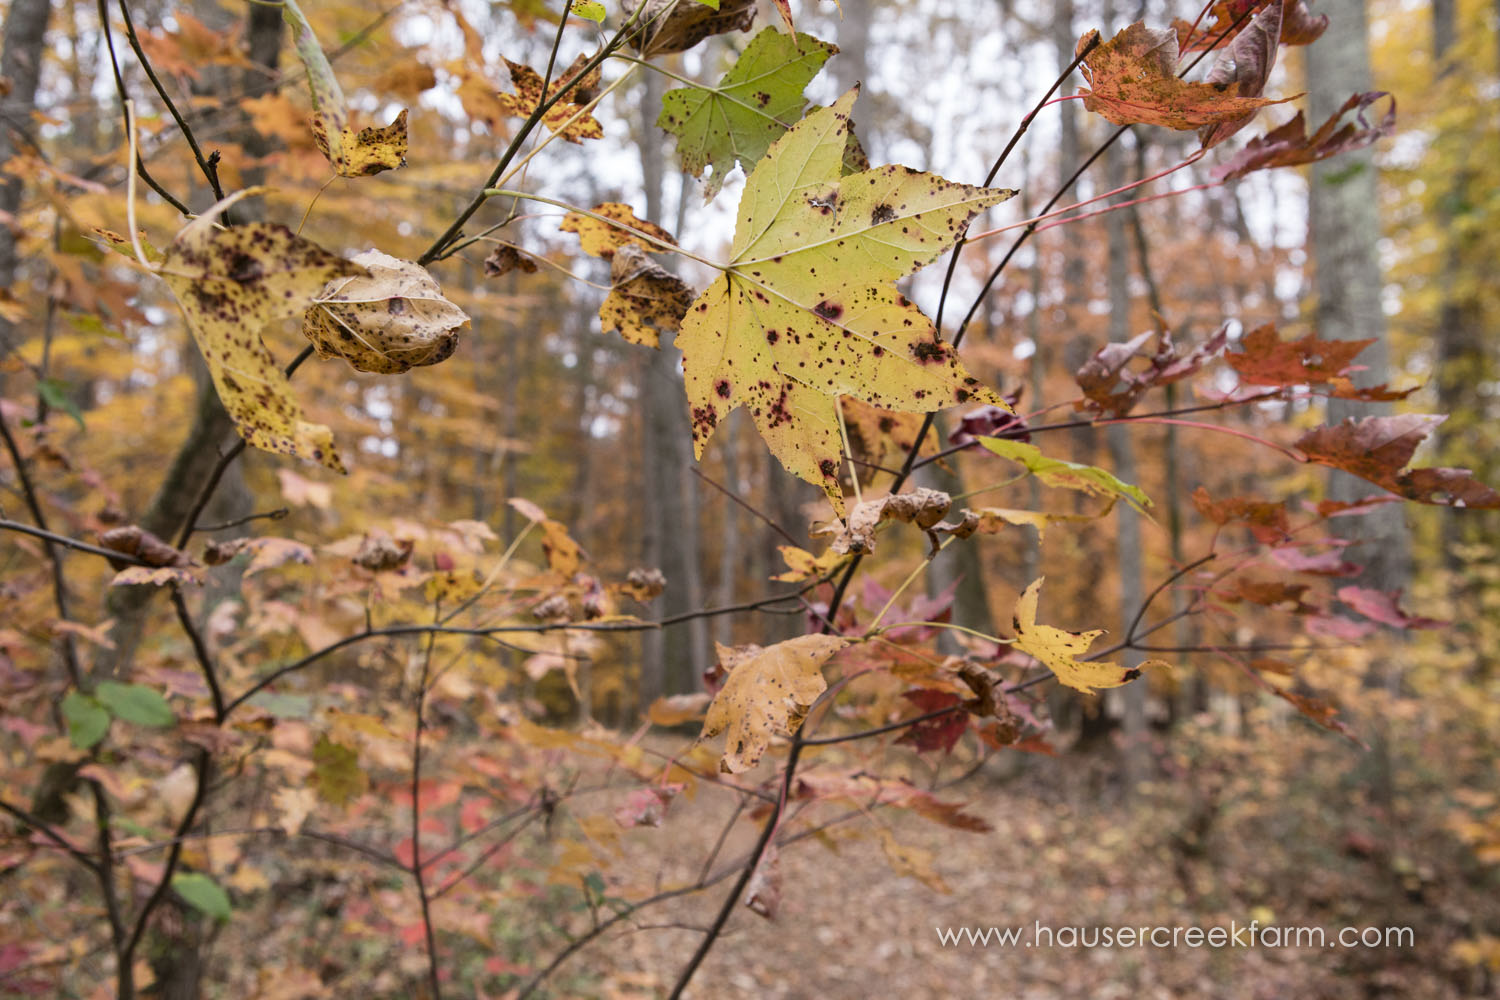 fall-leaves-at-hauser-creek-farm-photo-by-chris-fowler-3630color.jpg